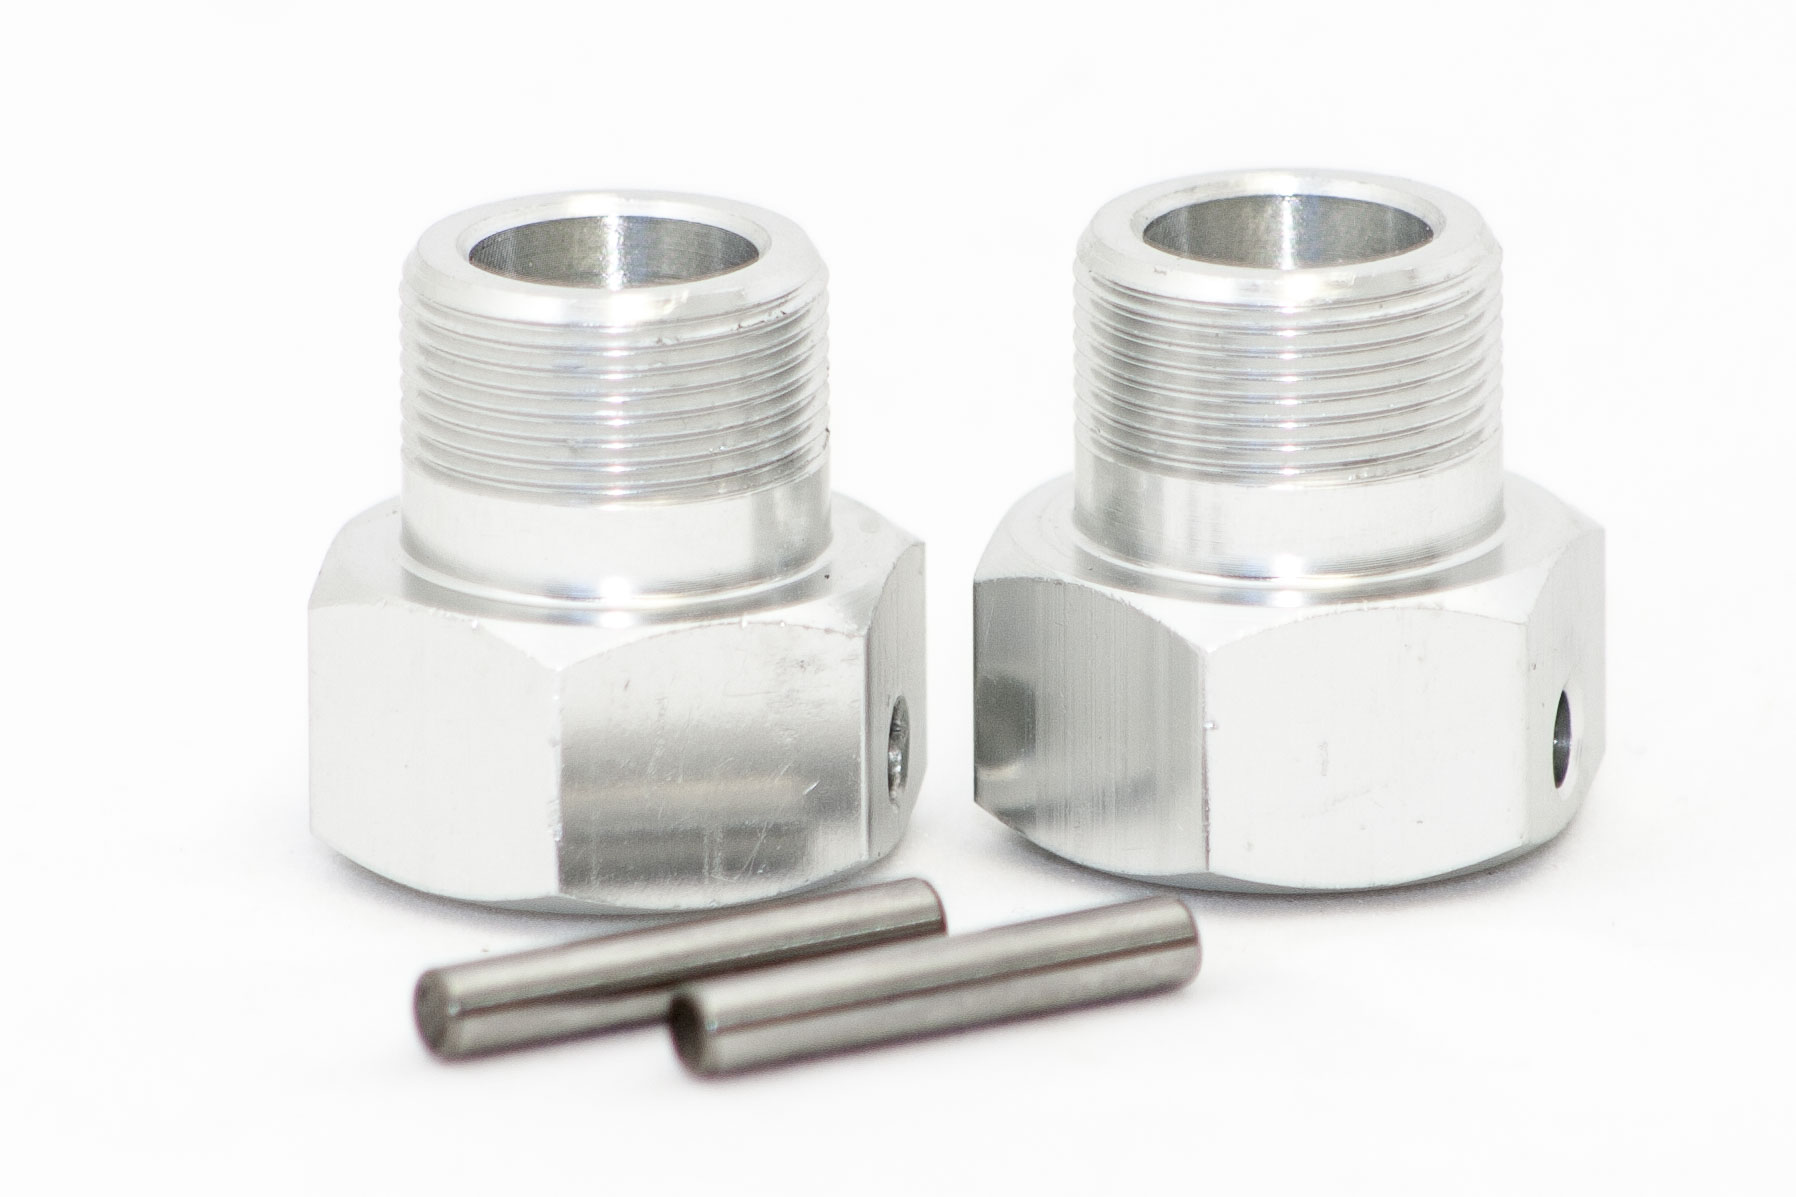 QS Rear Aluminum Wheel Hubs (24mm) (Set of 2)